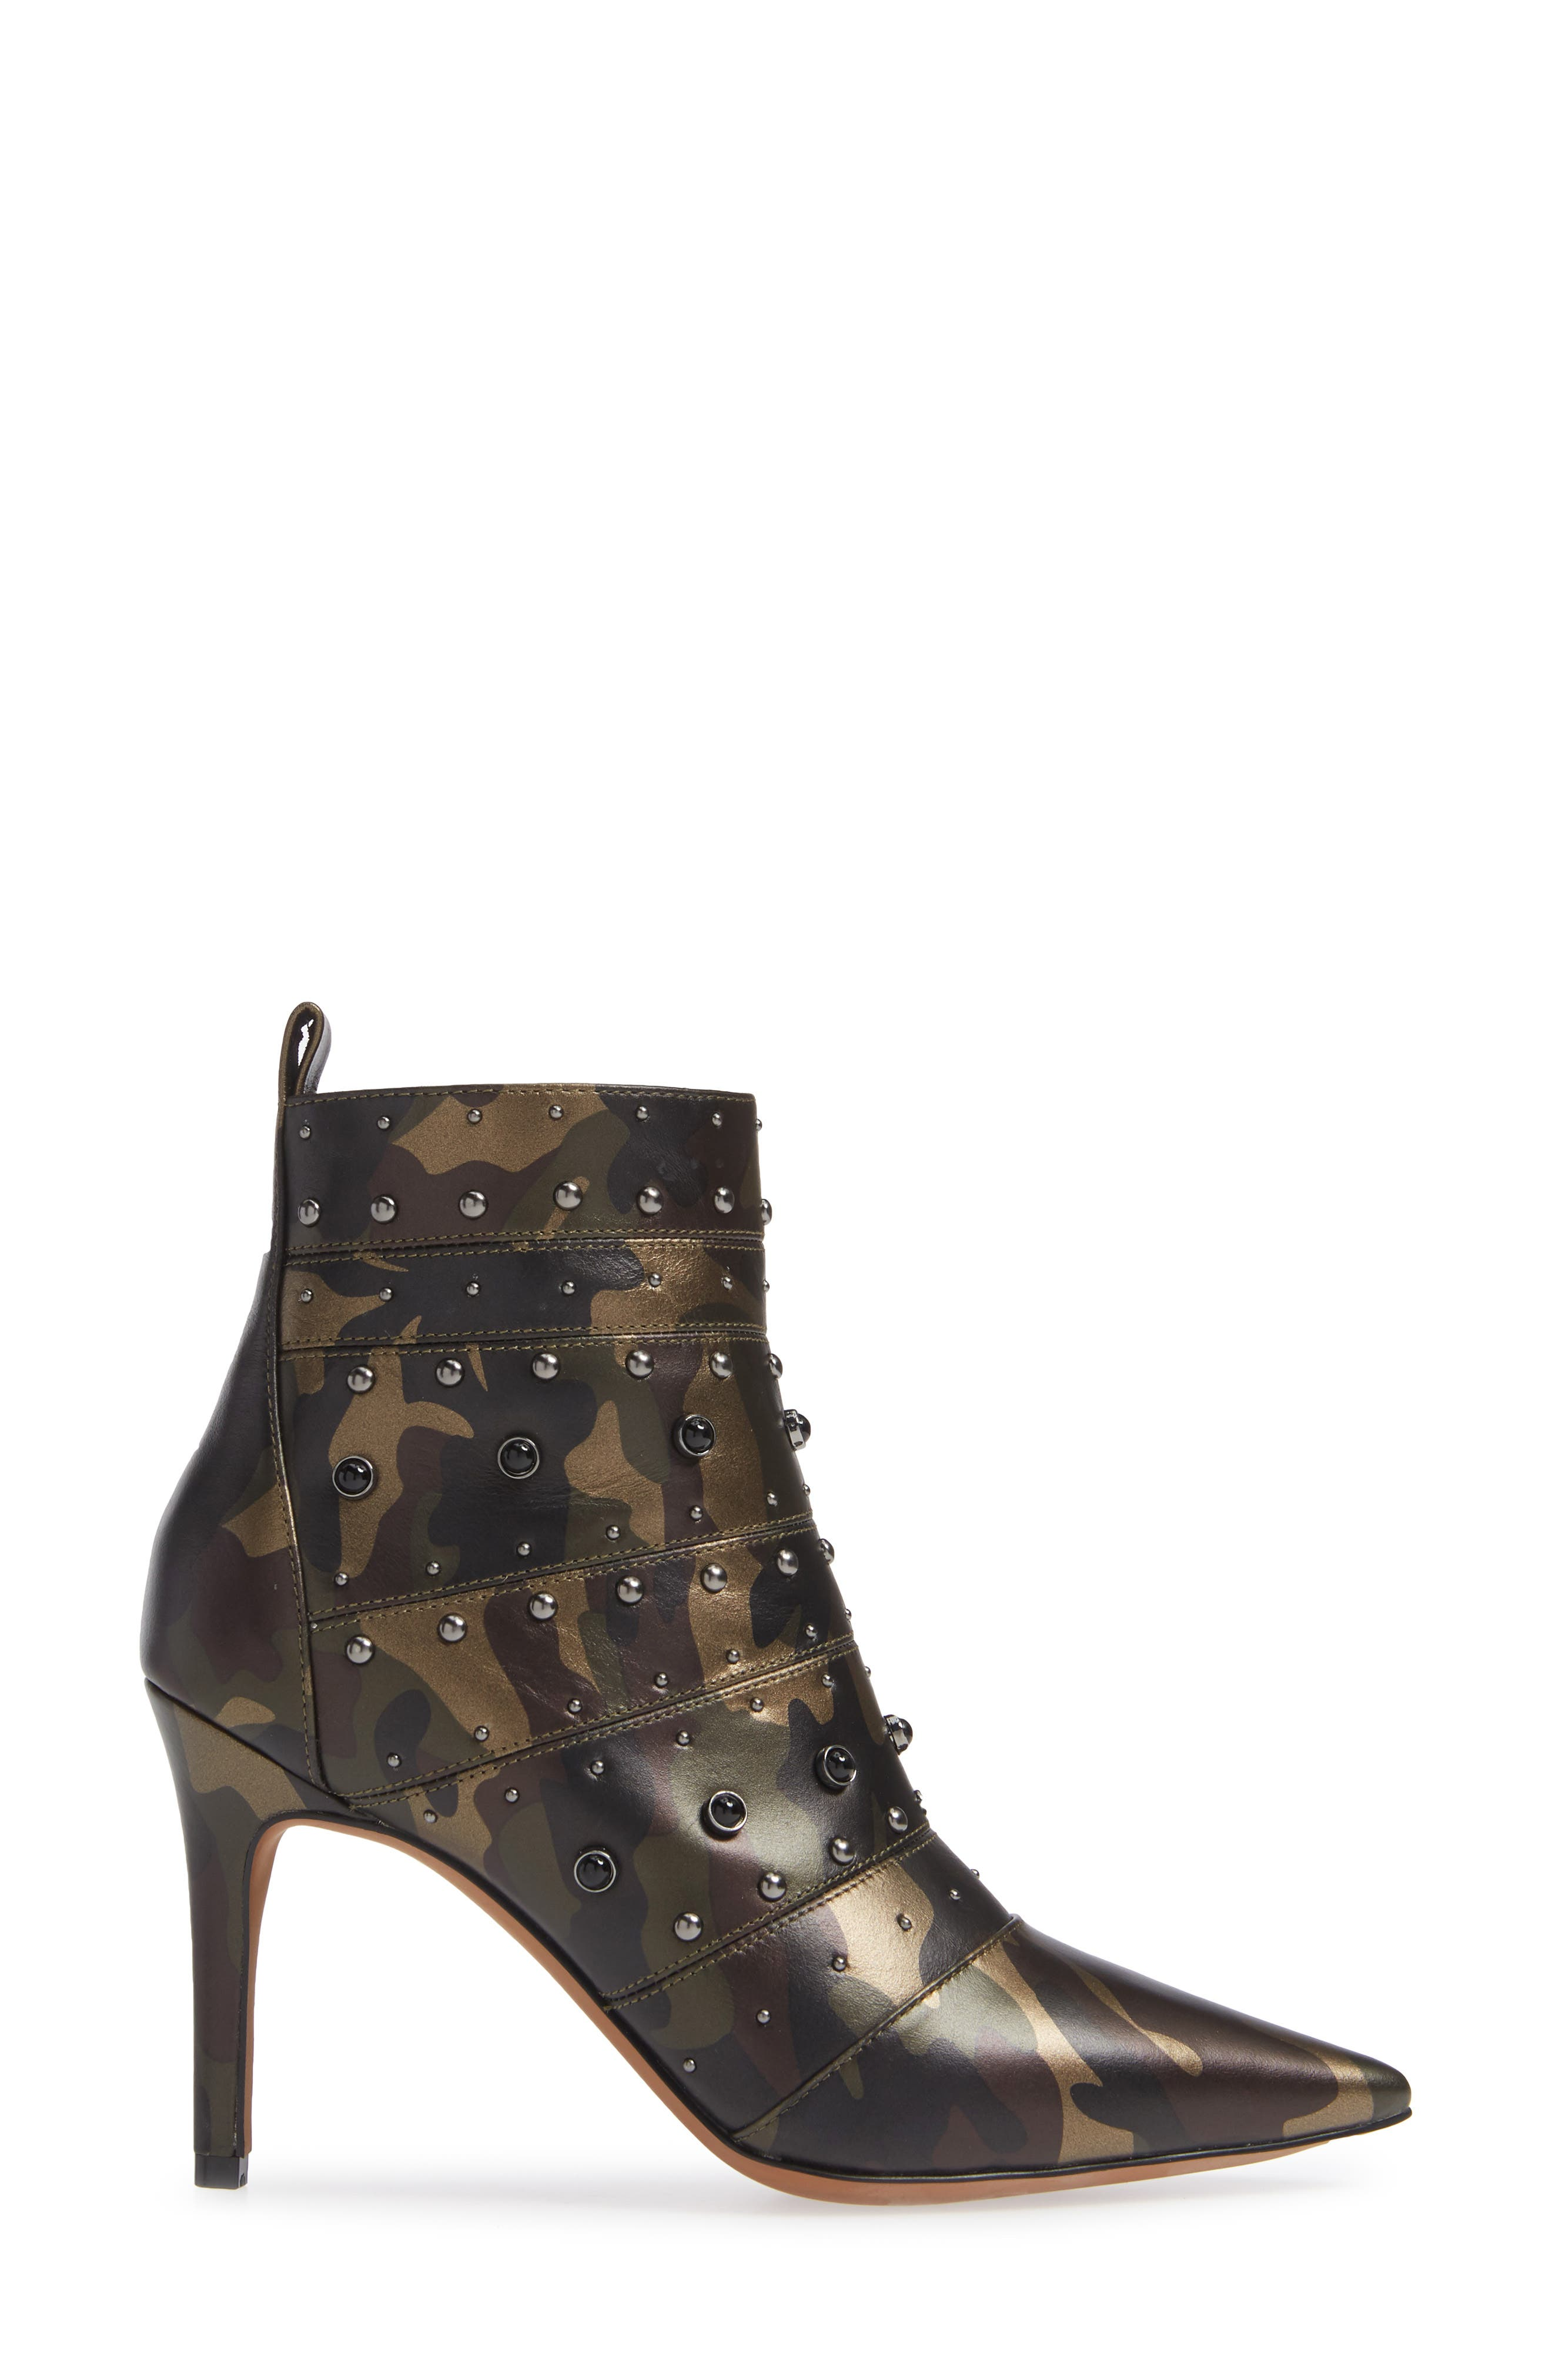 Nara Studded Bootie,                             Alternate thumbnail 3, color,                             CAMO LEATHER